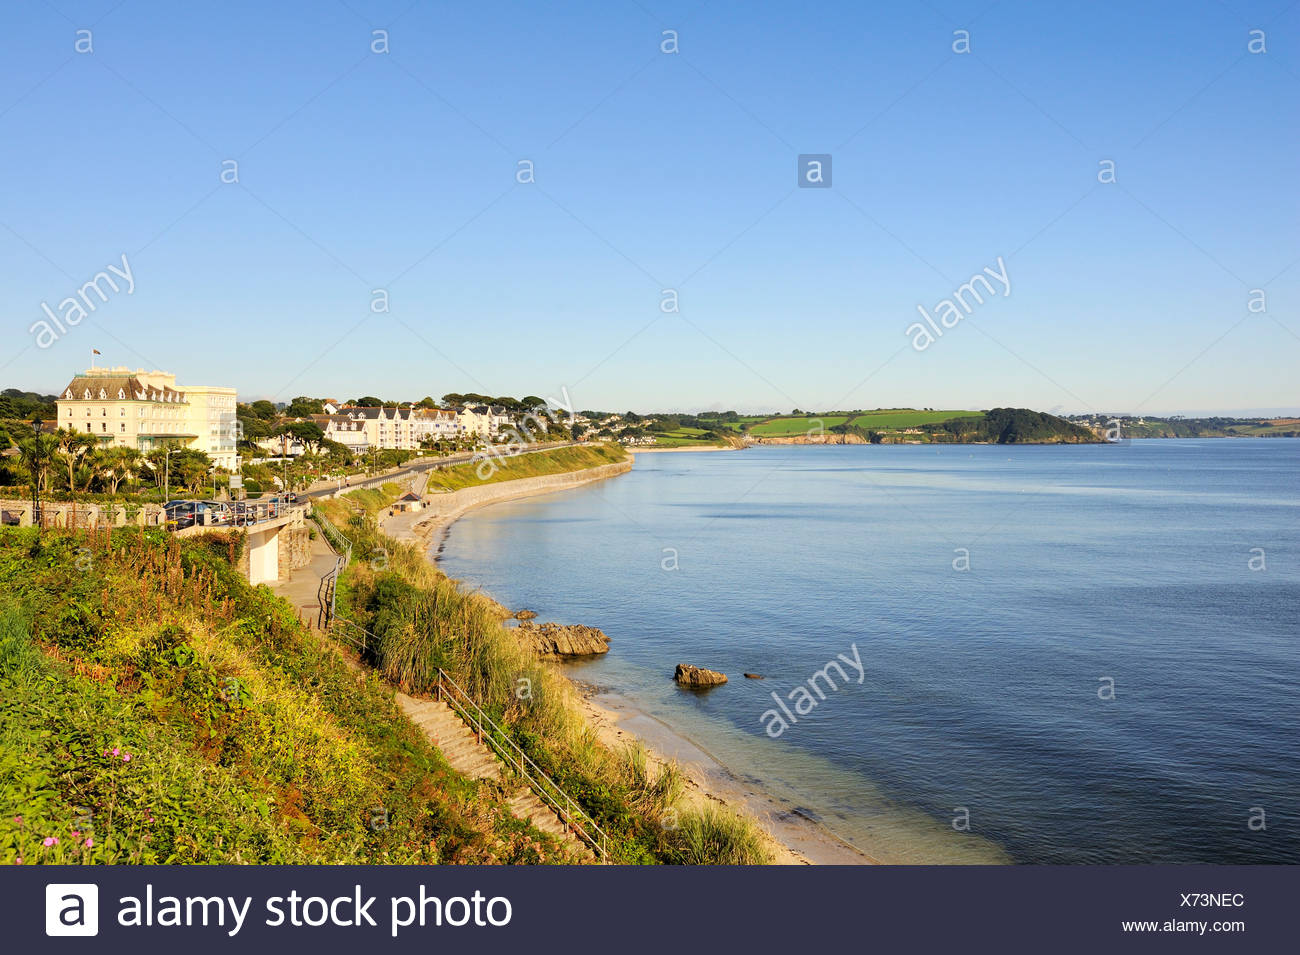 Overlooking the Bay of Falmouth, Cornwall, England, UK, Europe Stock Photo